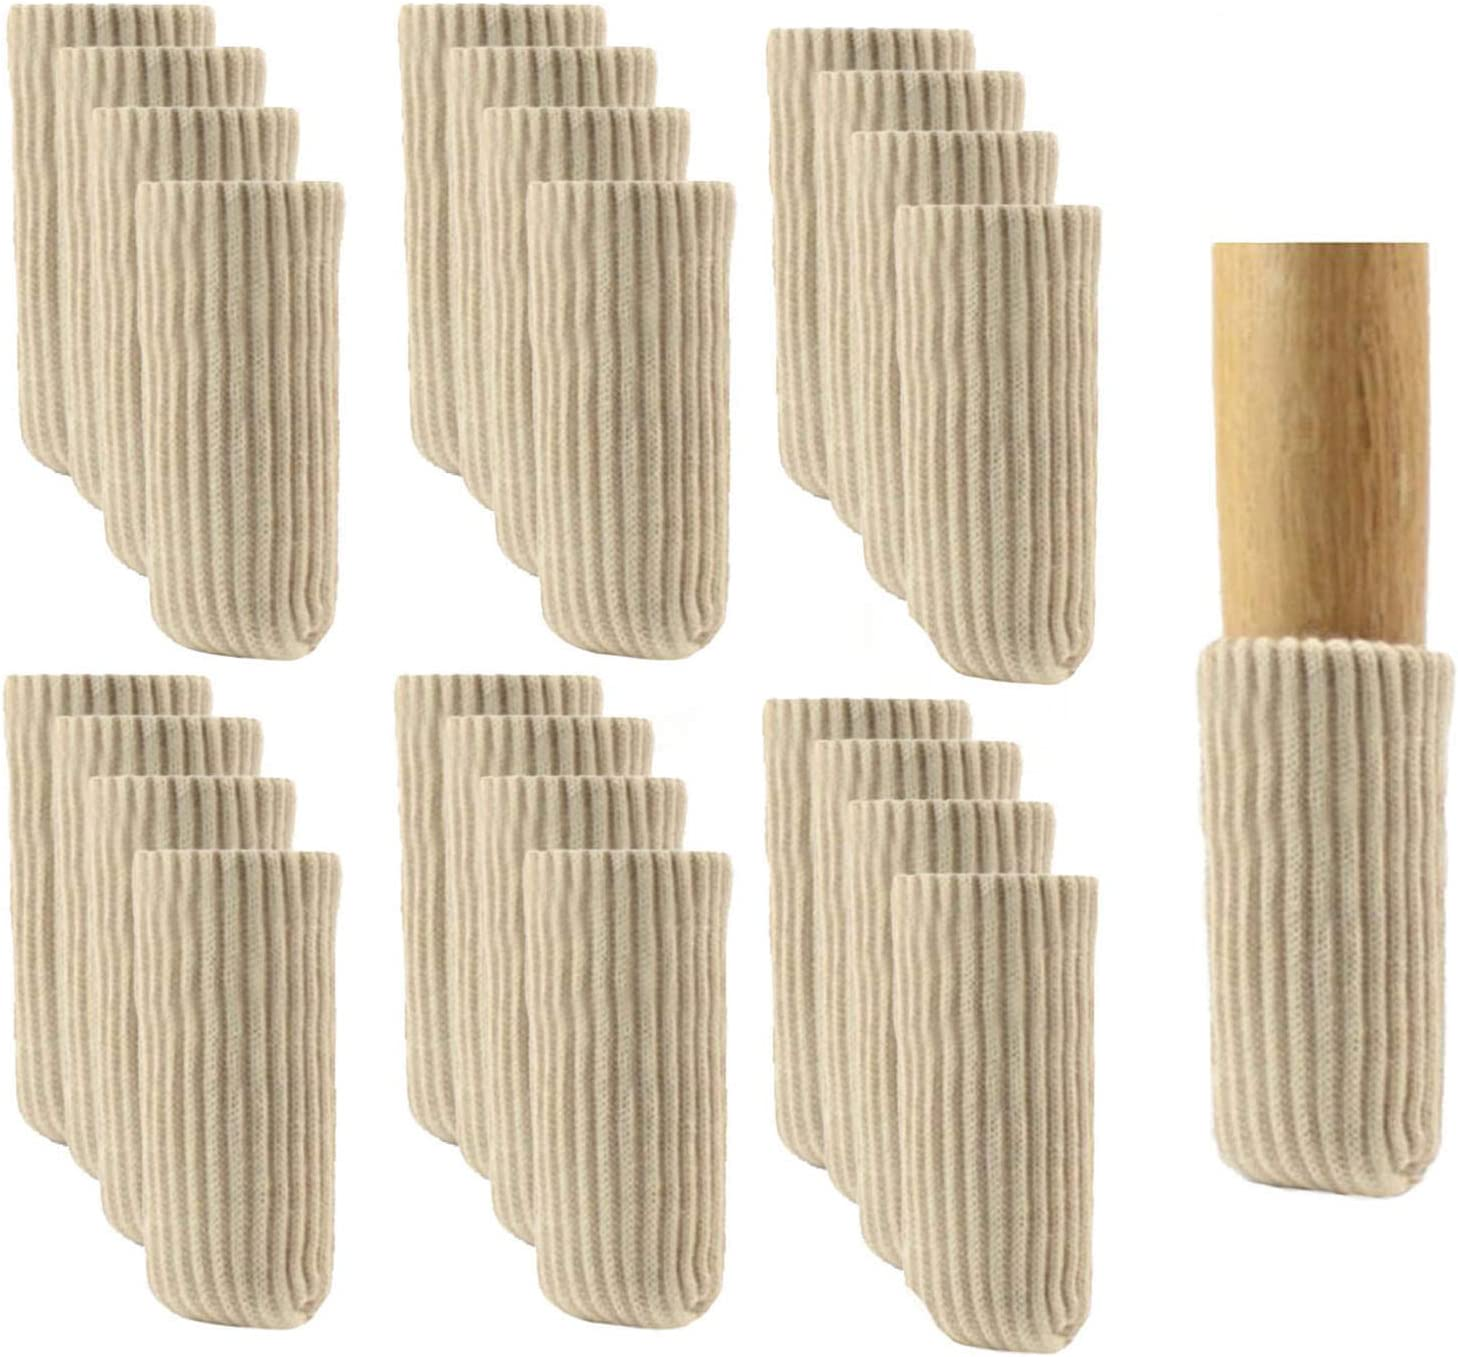 24 PCS Furniture Leg Socks Knitted Furniture Socks - Chair Leg Floor Protectors for Avoid Scratches, Furniture Pads Set for Moving Easily and Reduce Noise, Beige